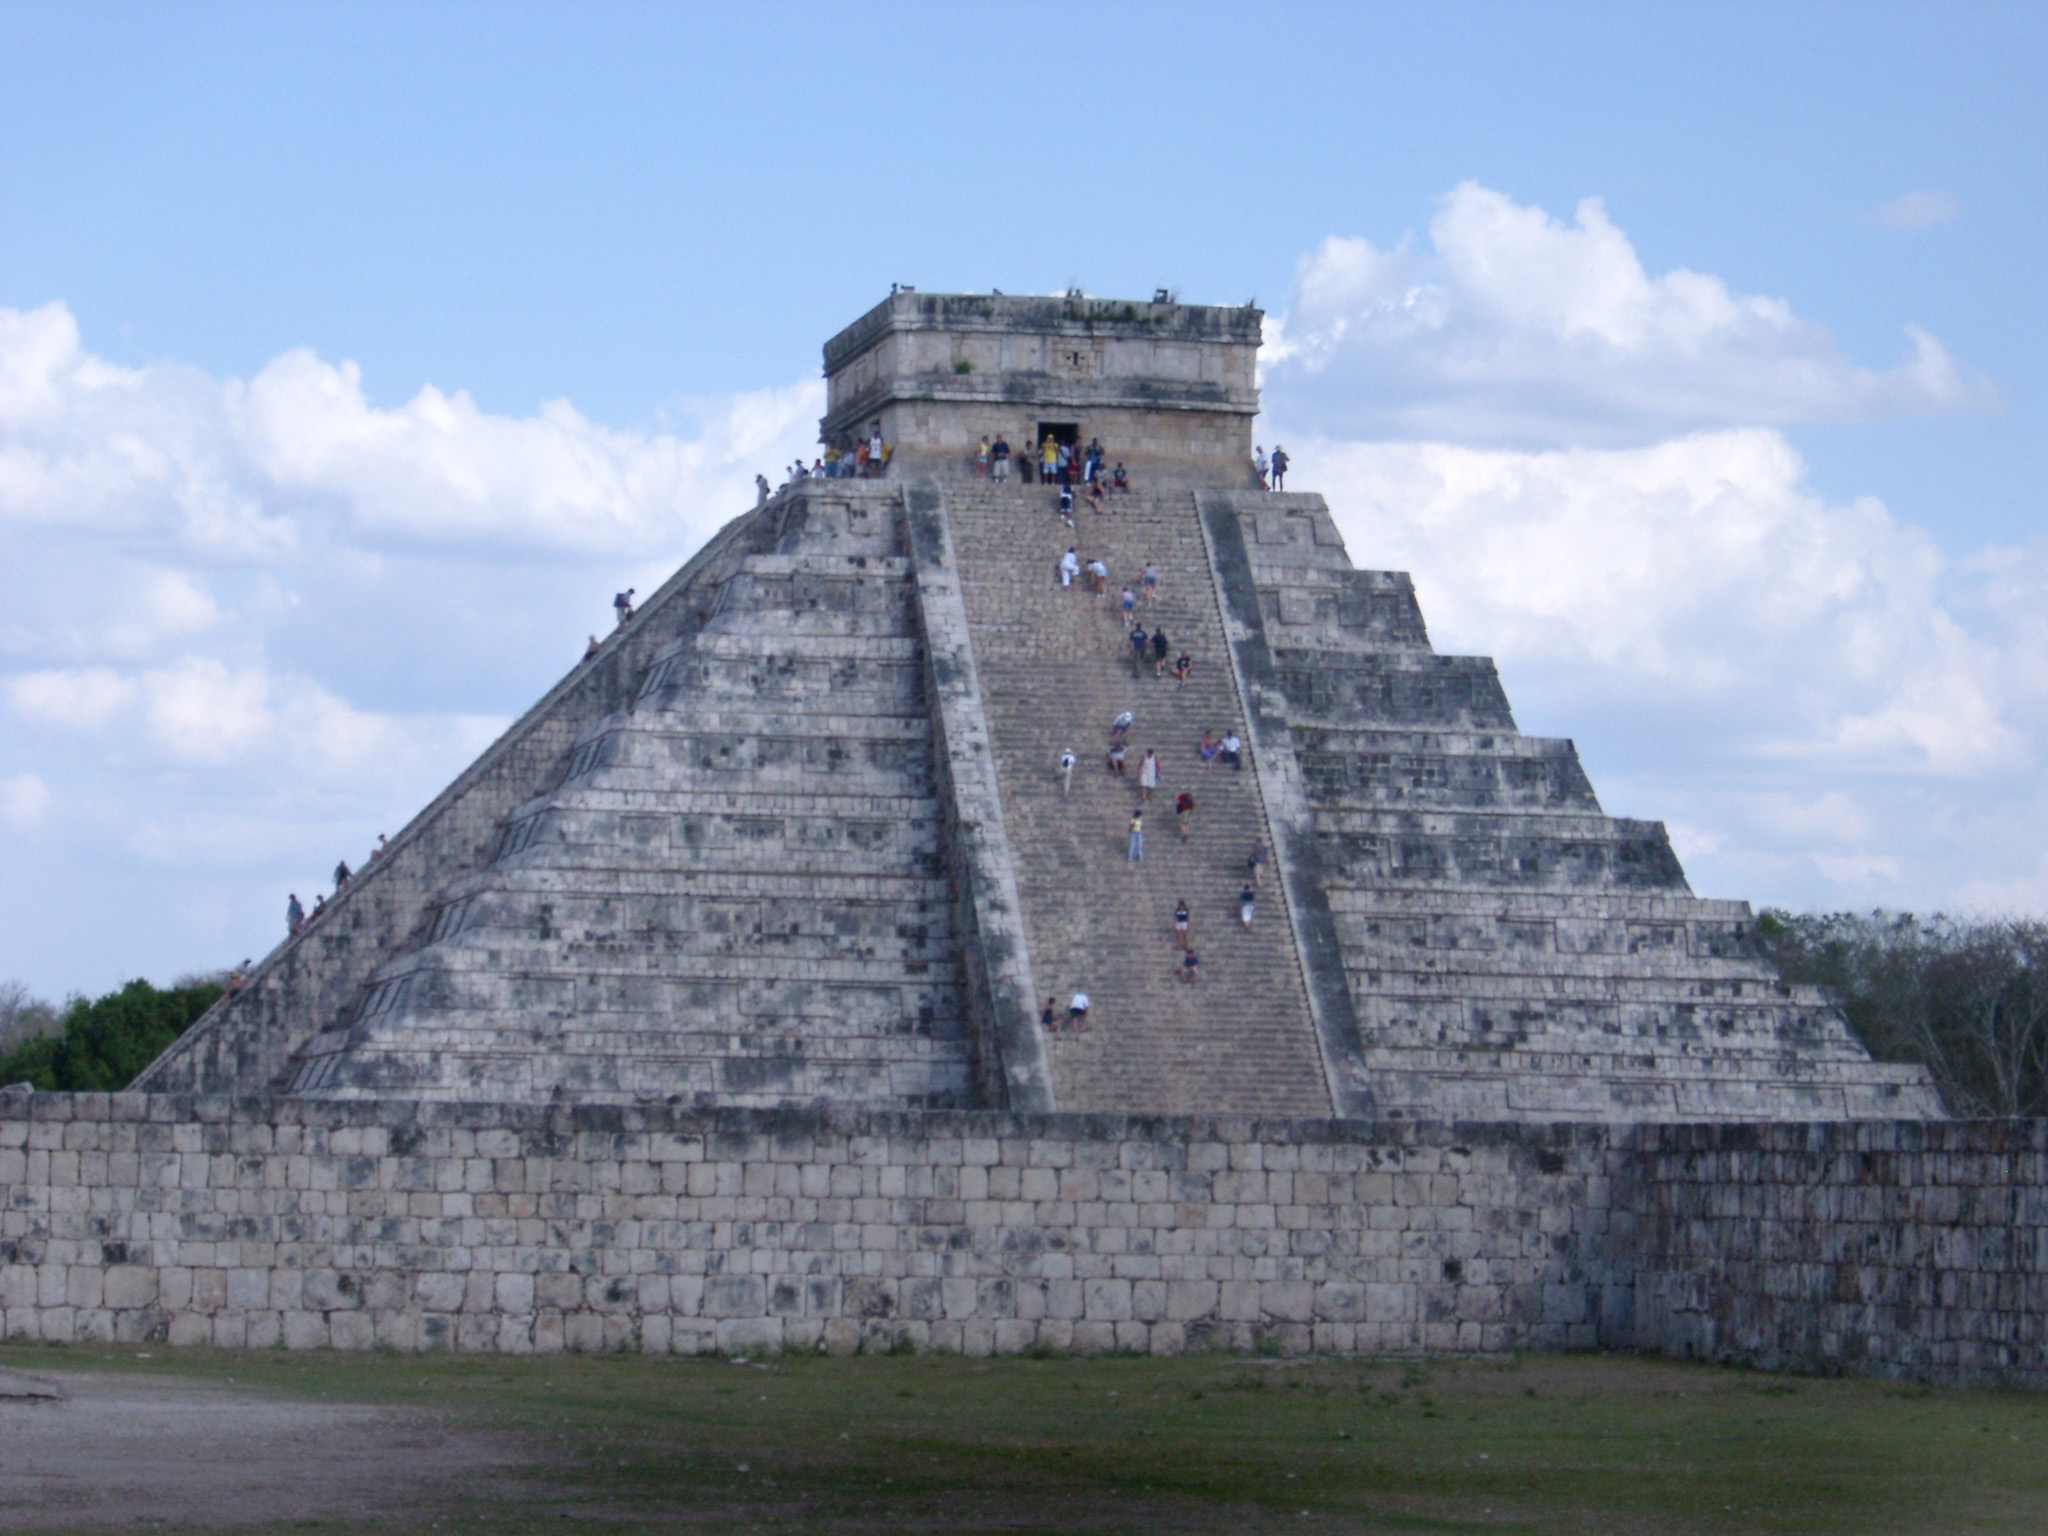 El Castillo, part of the Chitzen Itza Ruins, Mexico, an important Mayan archeological site and tourist attraction